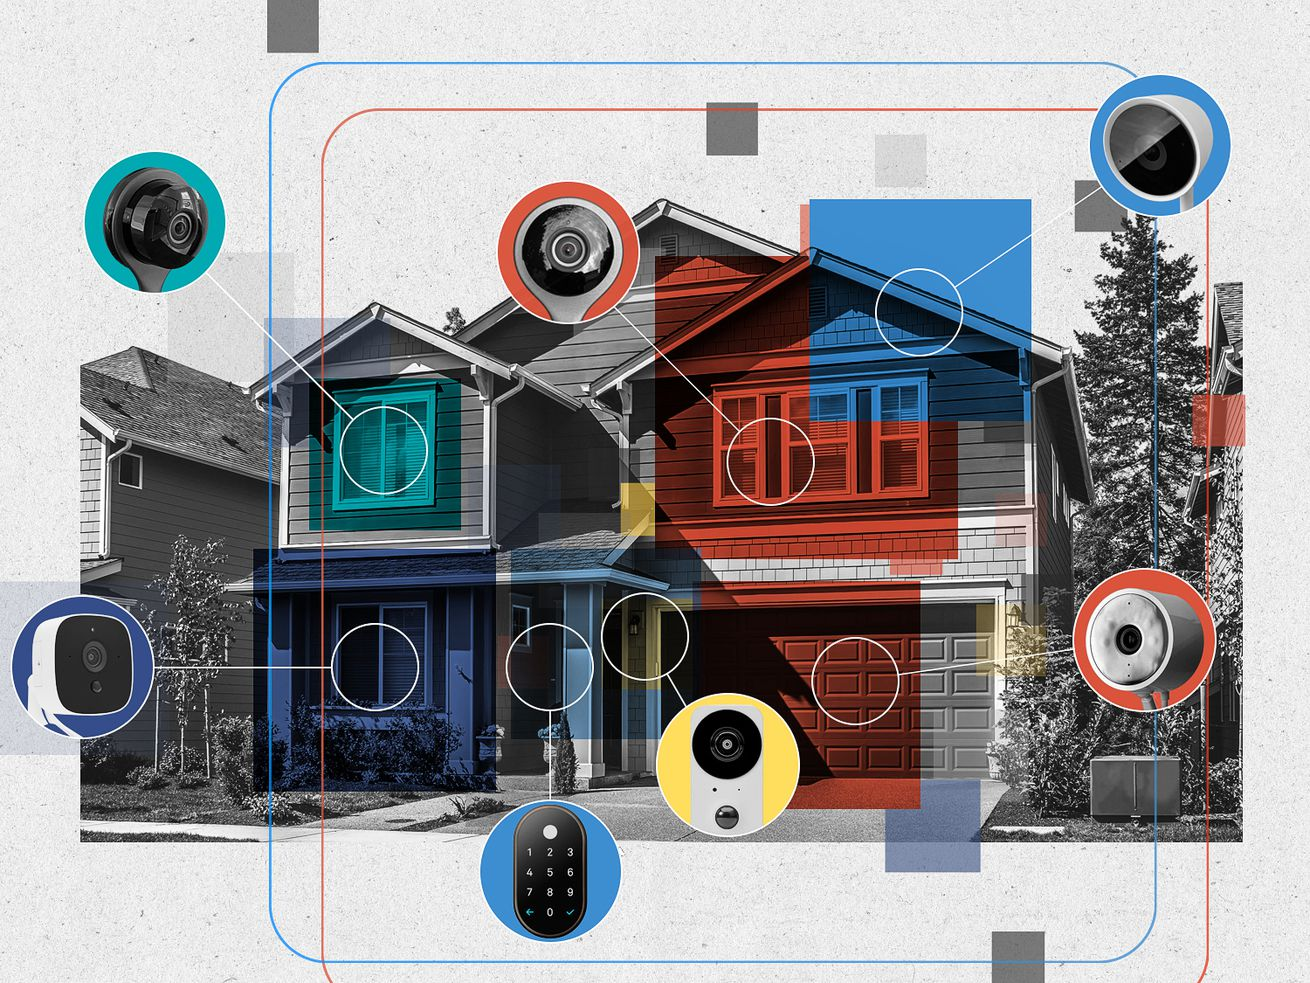 Graphic illustration of a house overlaid with different colored blocks and various home security devices.